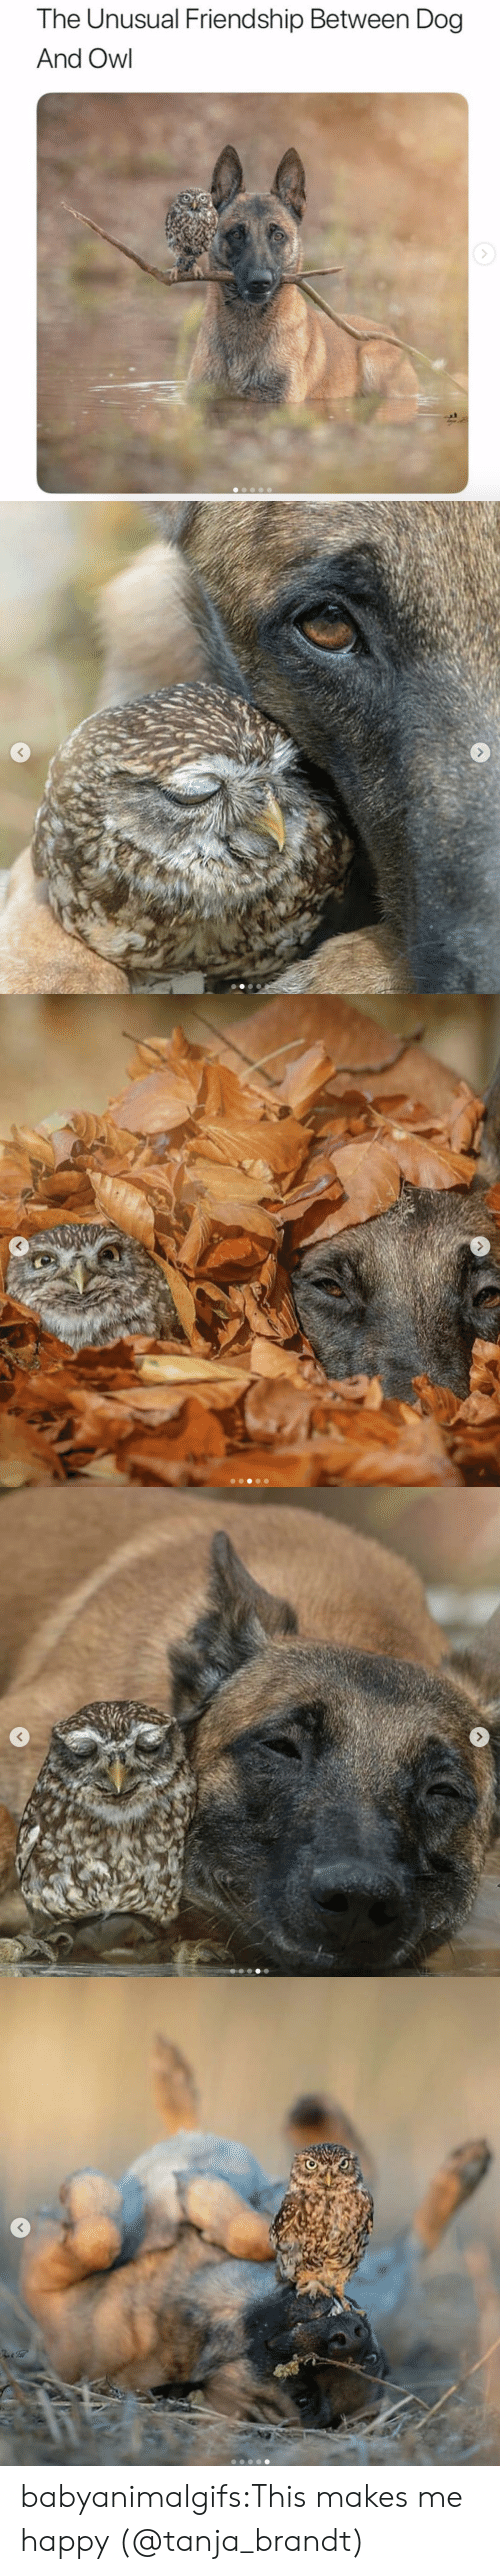 Instagram, Target, and Tumblr: The Unusual Friendship Between Dog  And Owl babyanimalgifs:This makes me happy (@tanja_brandt)